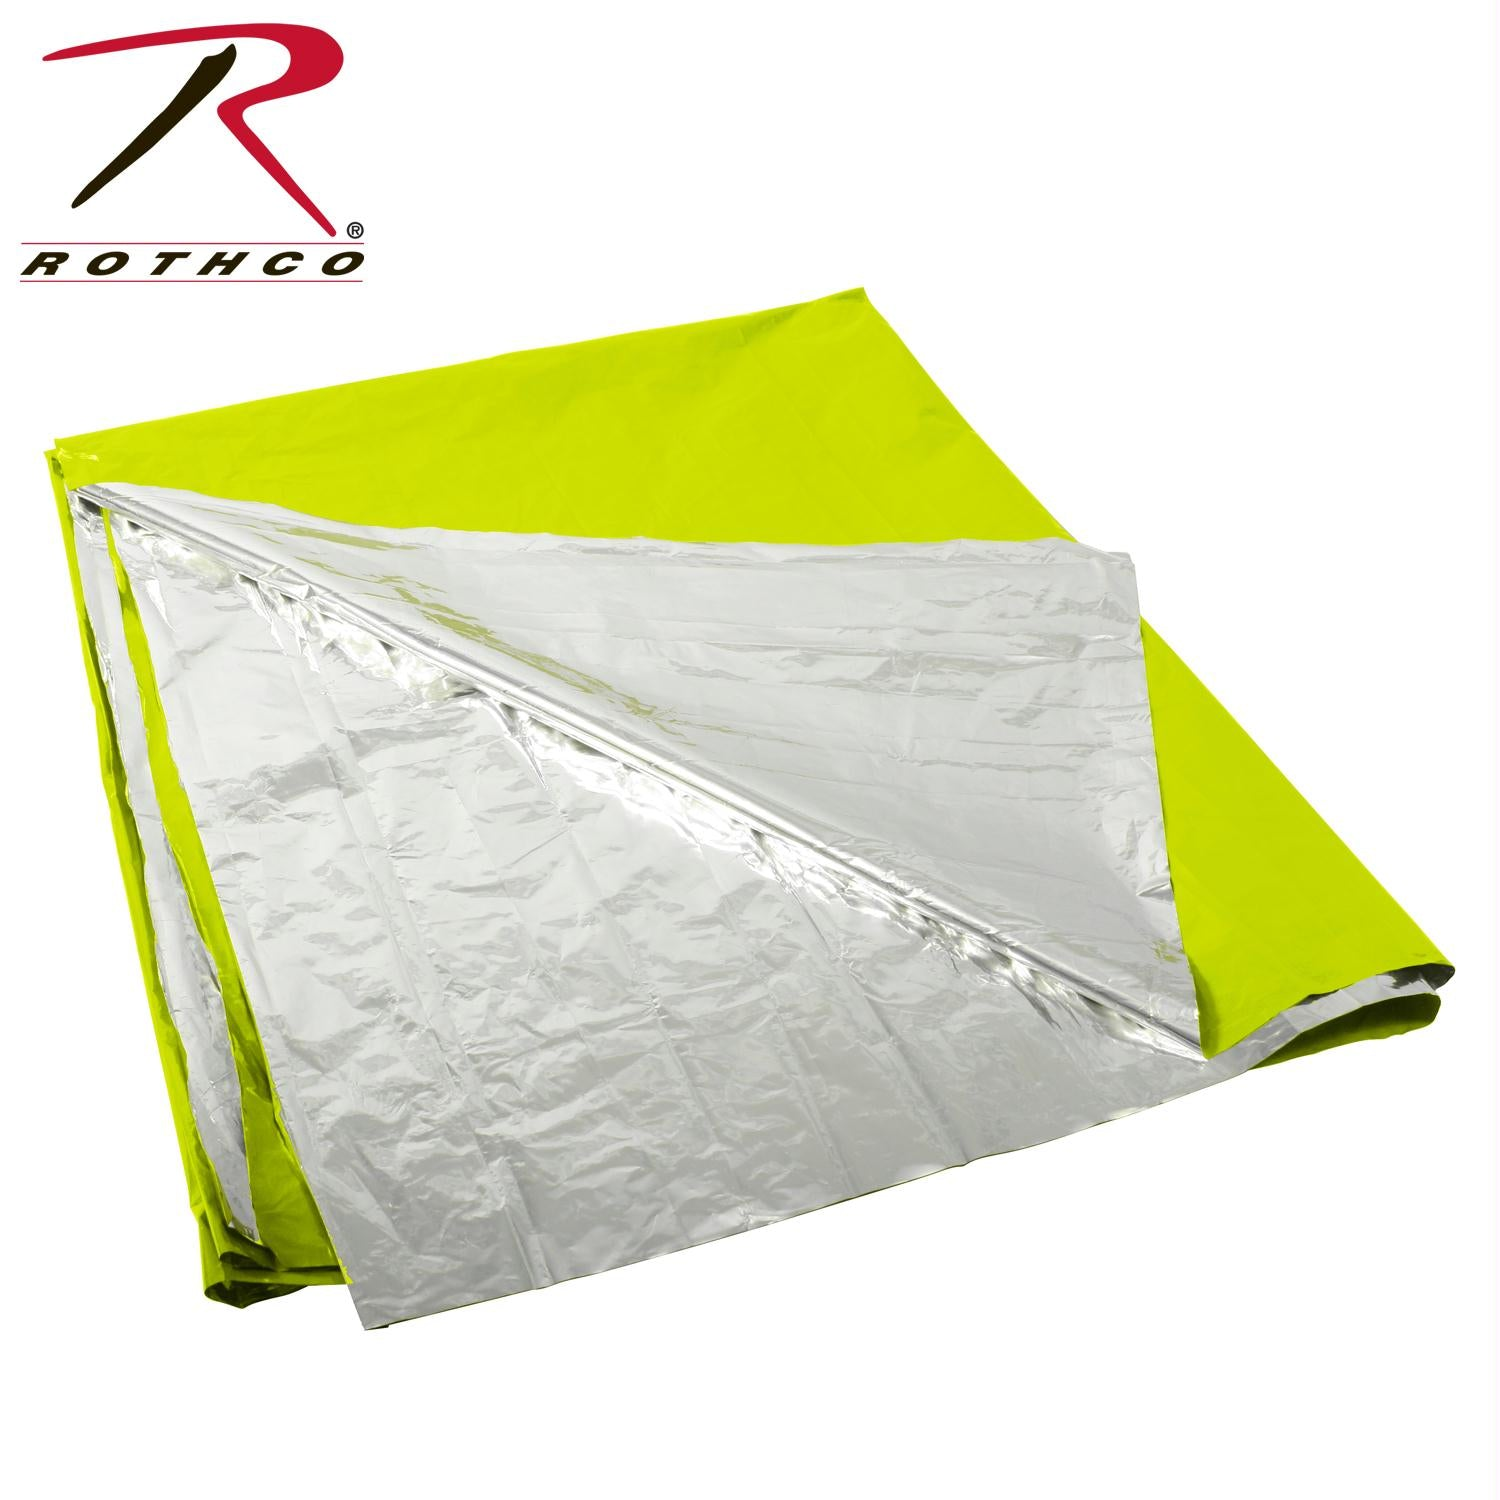 Rothco Polarshield Survival Blanket - Safety Green